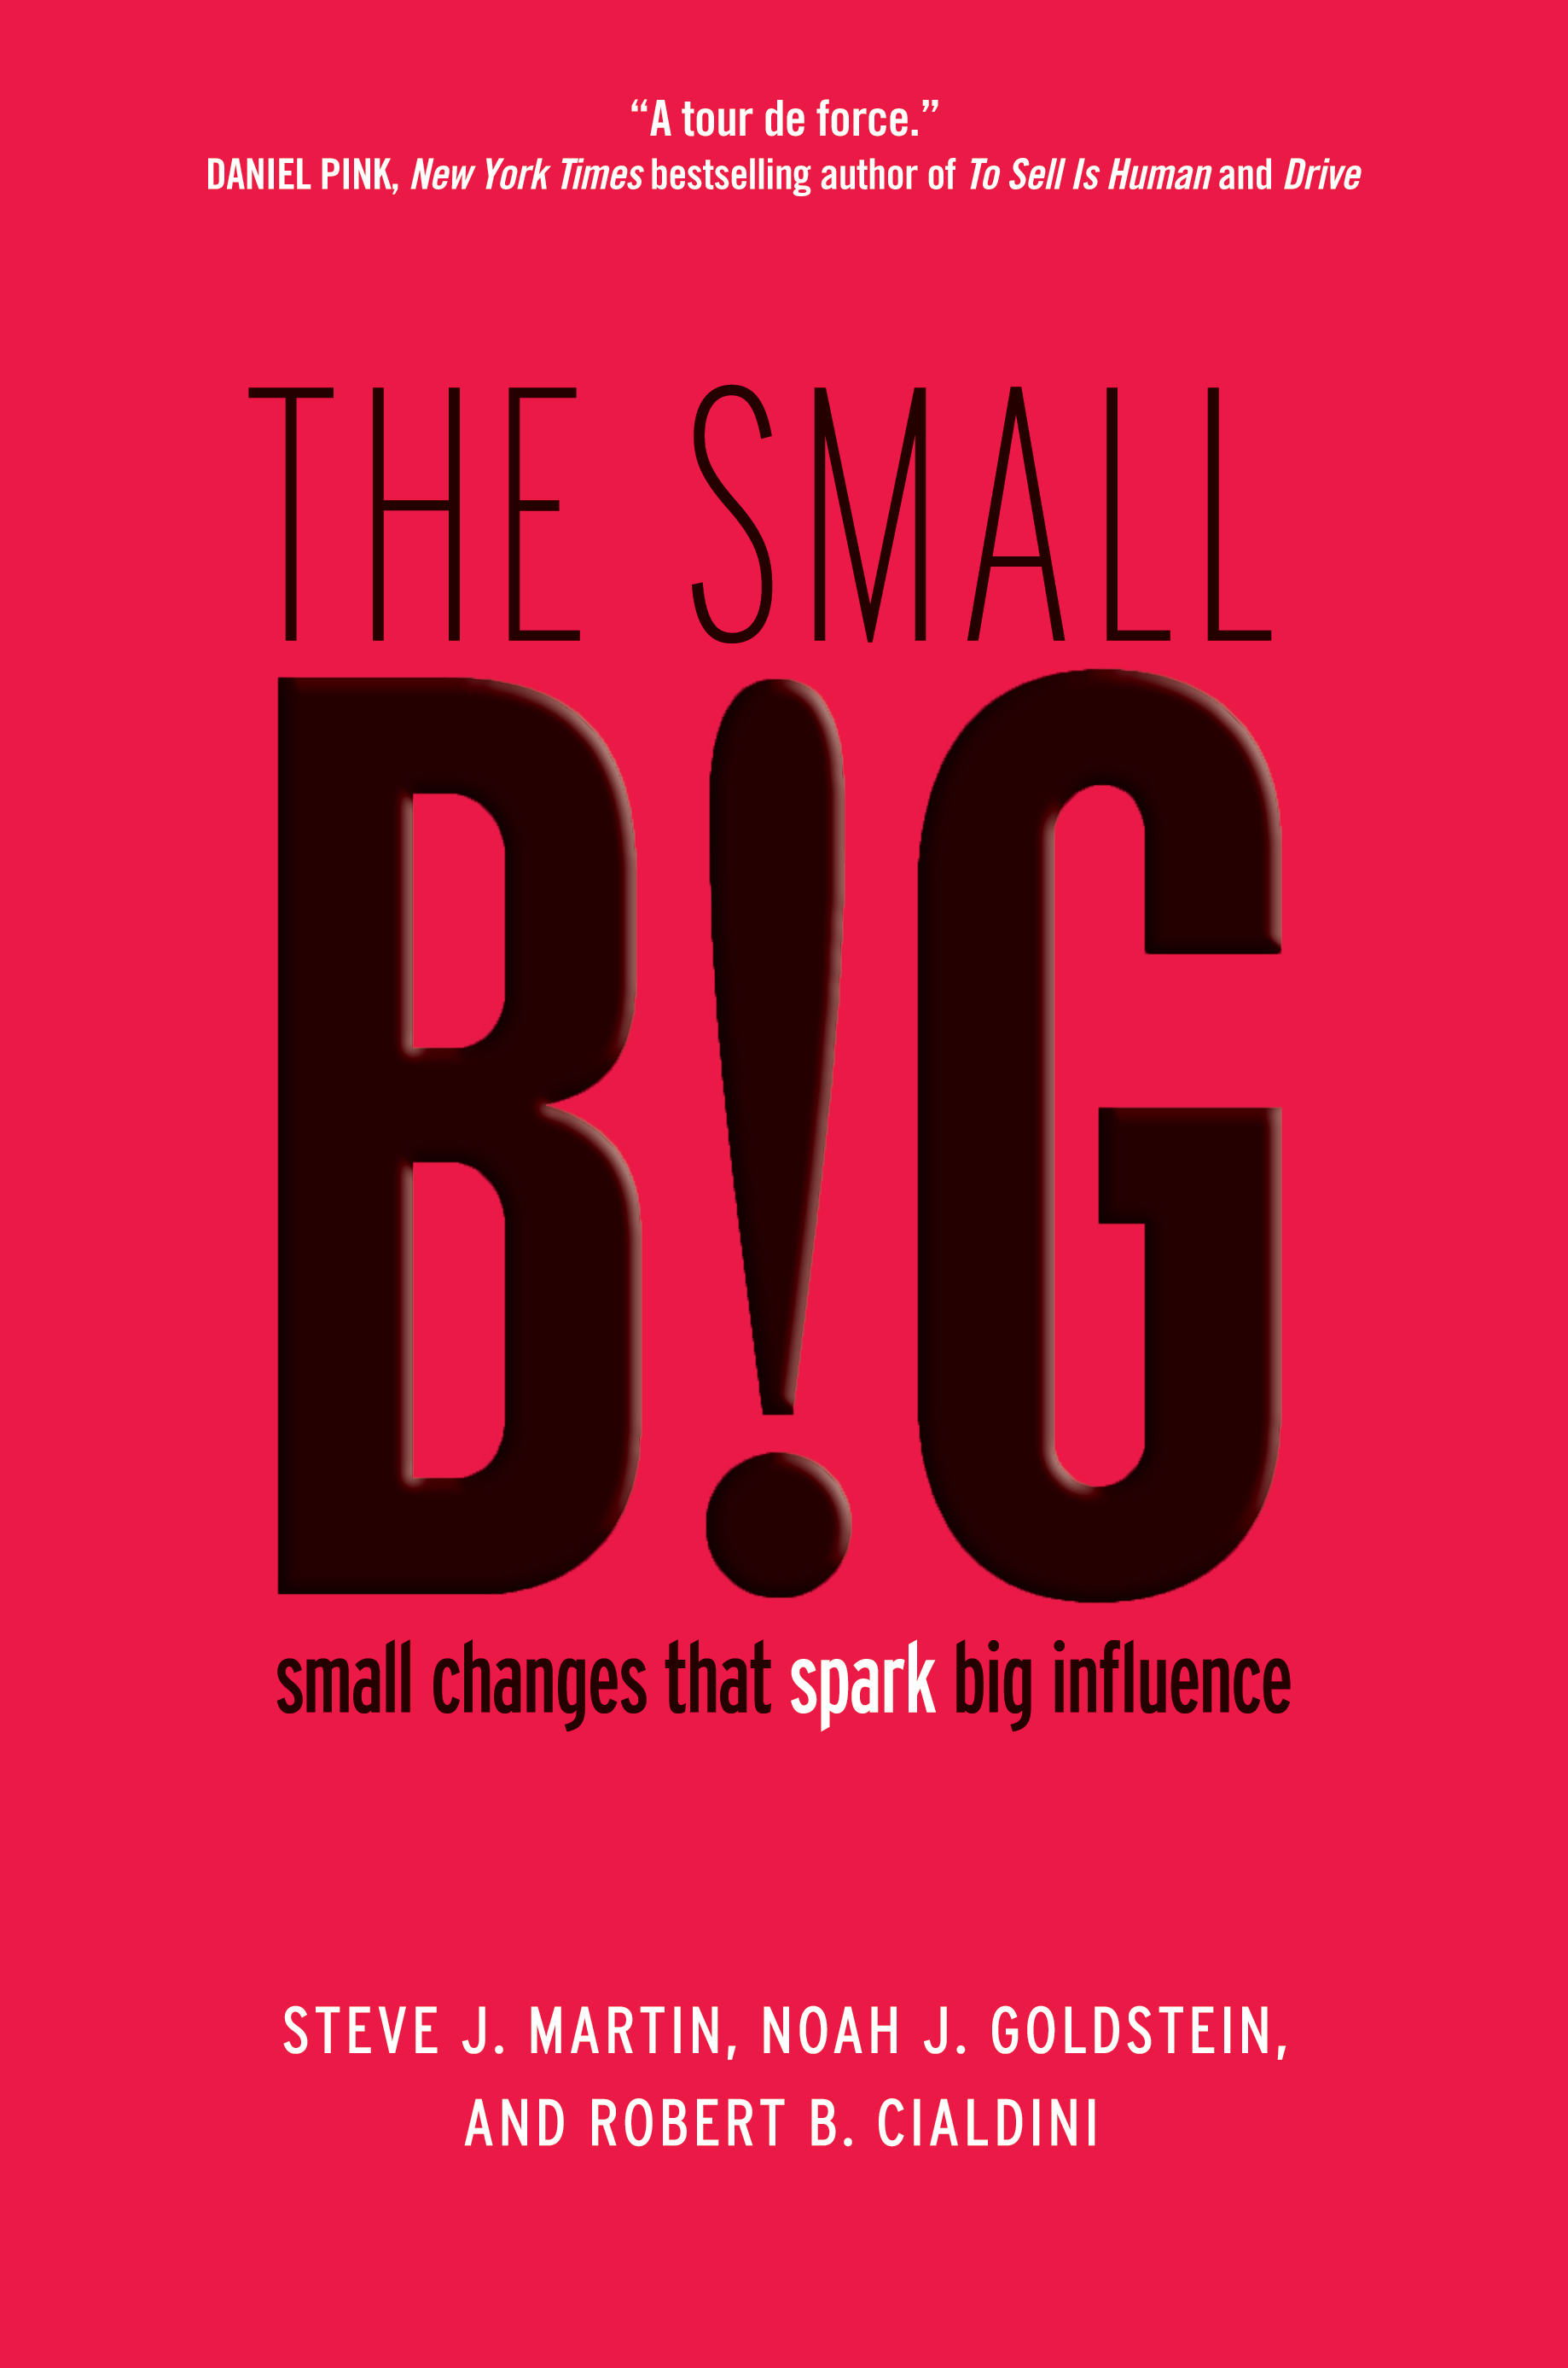 The small BIG small changes that spark big influence